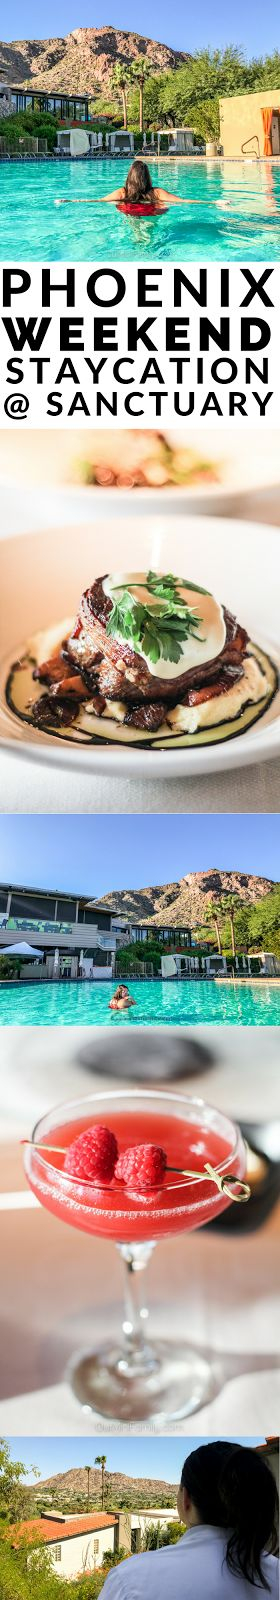 Sharing the details from our weekend staycation at Sanctuary on Camelback! ad